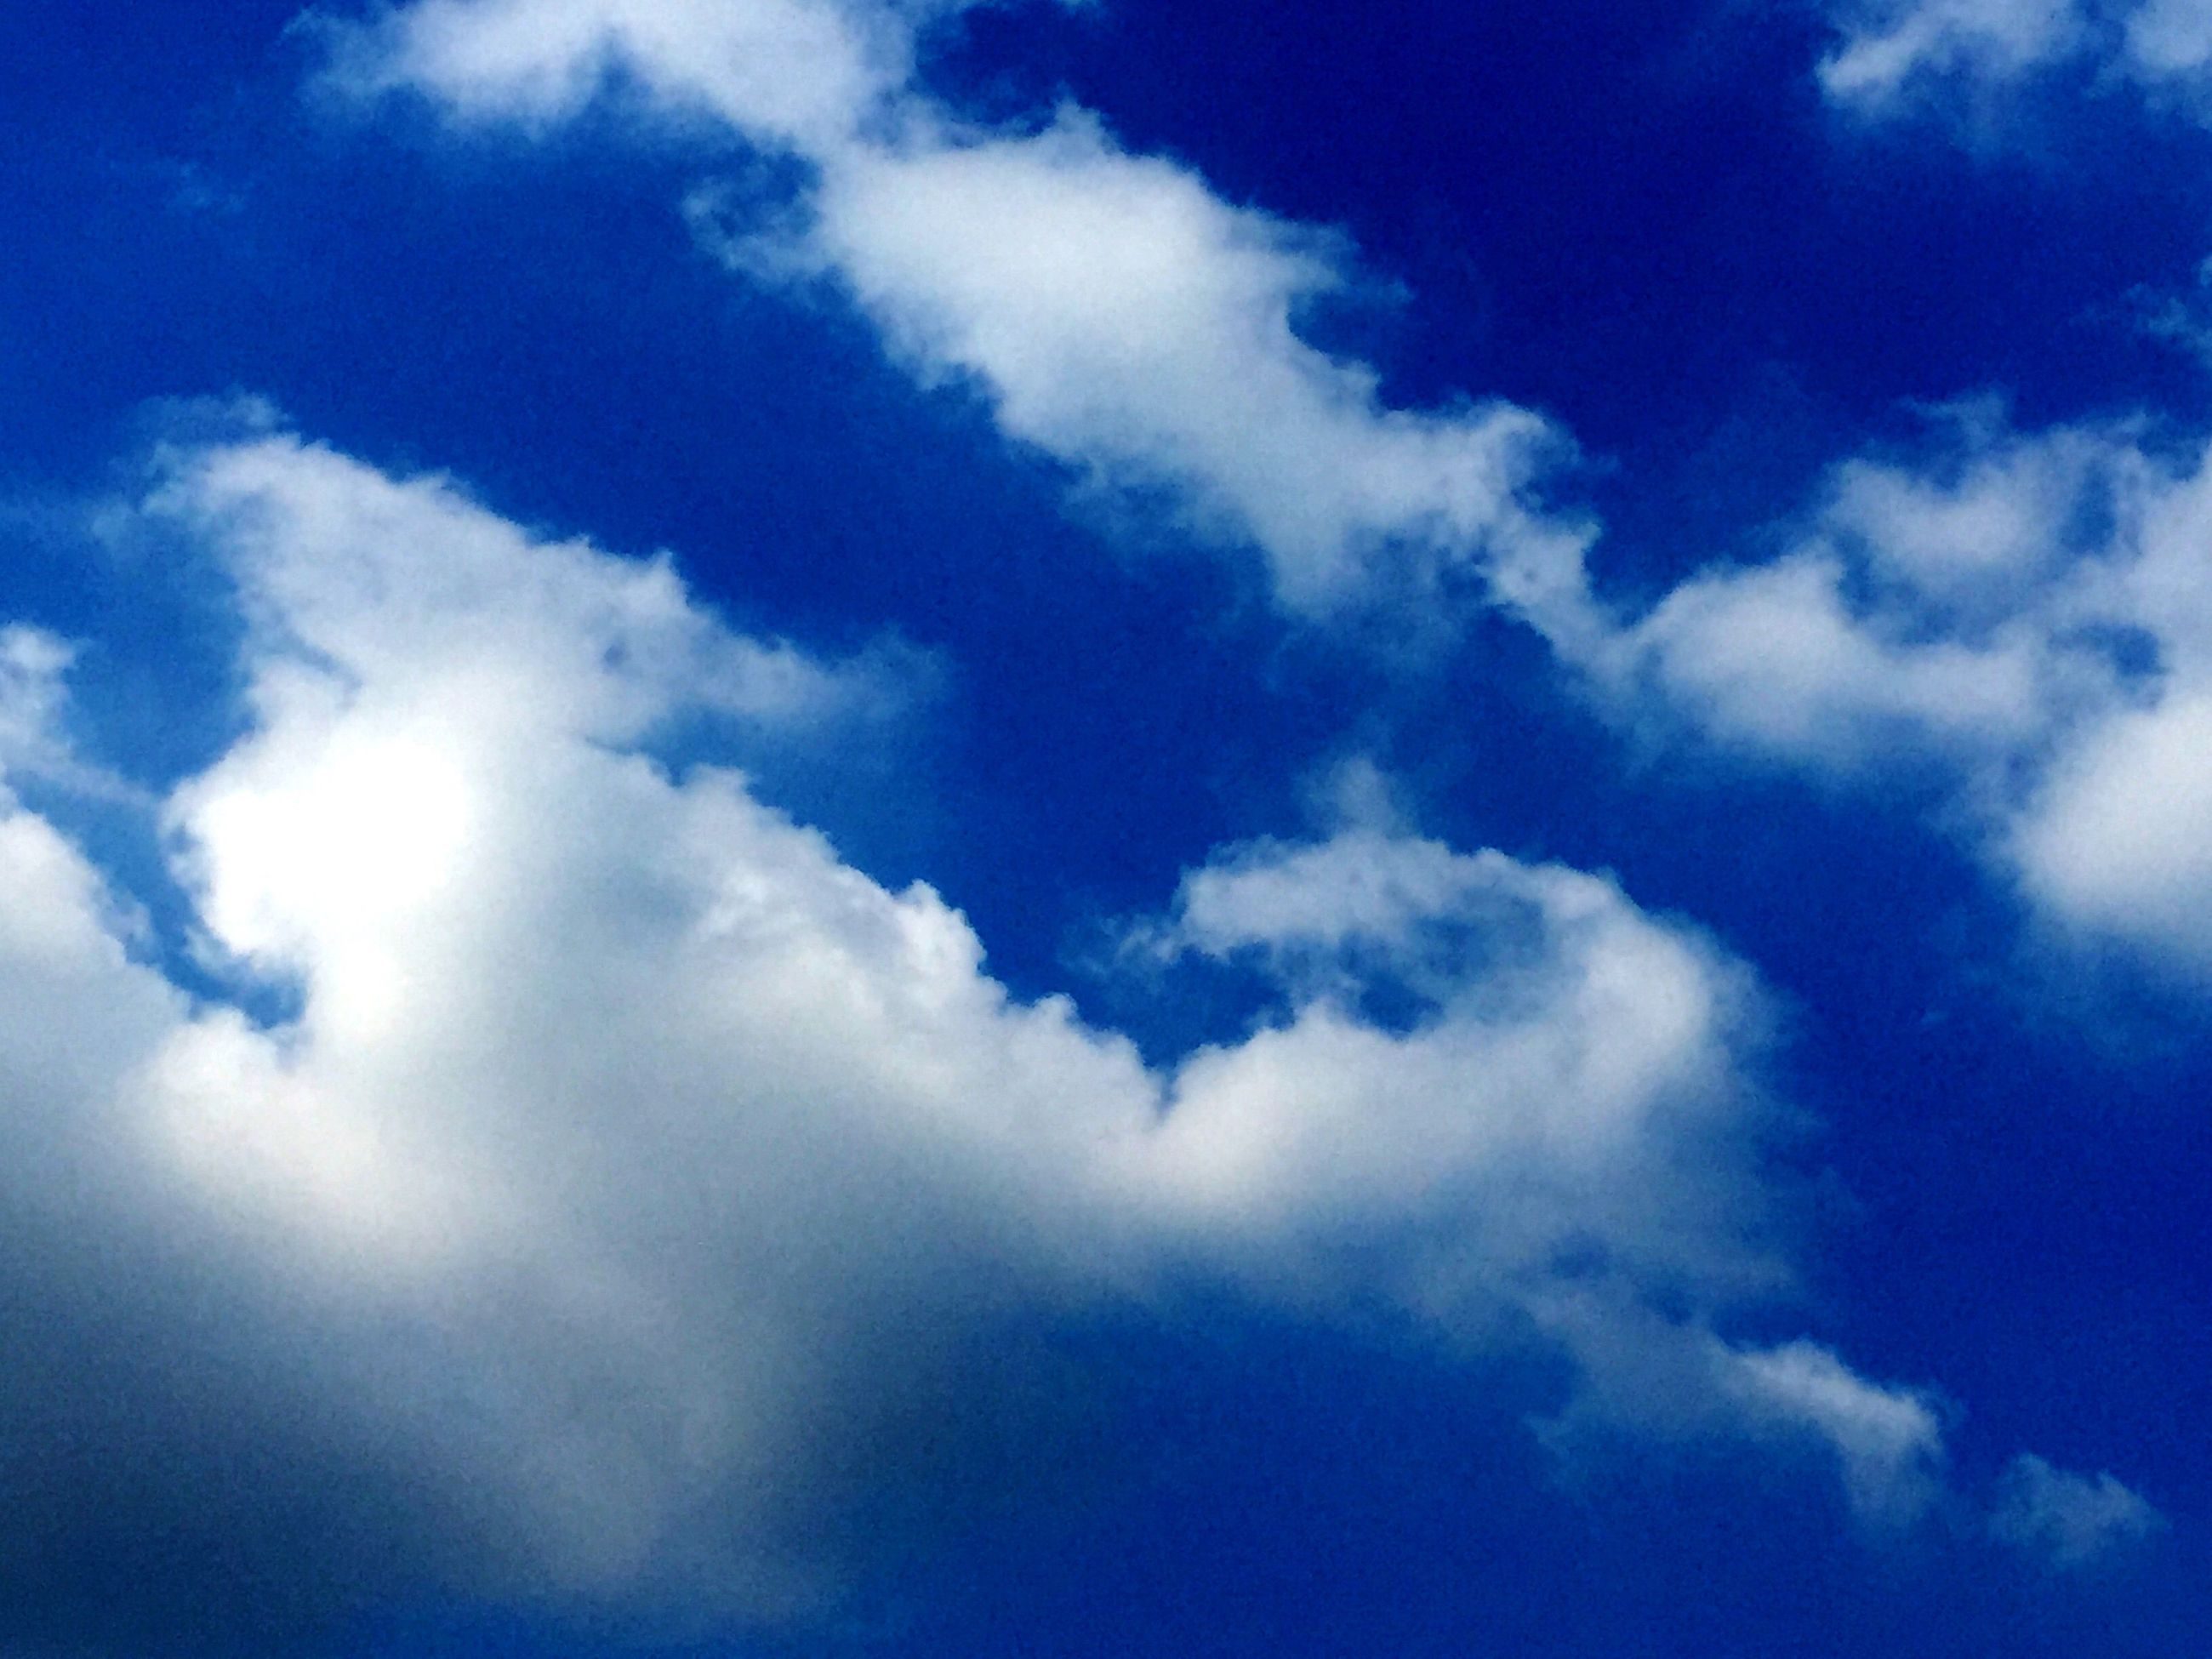 low angle view, blue, sky, sky only, cloud - sky, beauty in nature, tranquility, nature, scenics, tranquil scene, cloudscape, cloud, backgrounds, cloudy, idyllic, day, outdoors, full frame, no people, majestic, white, softness